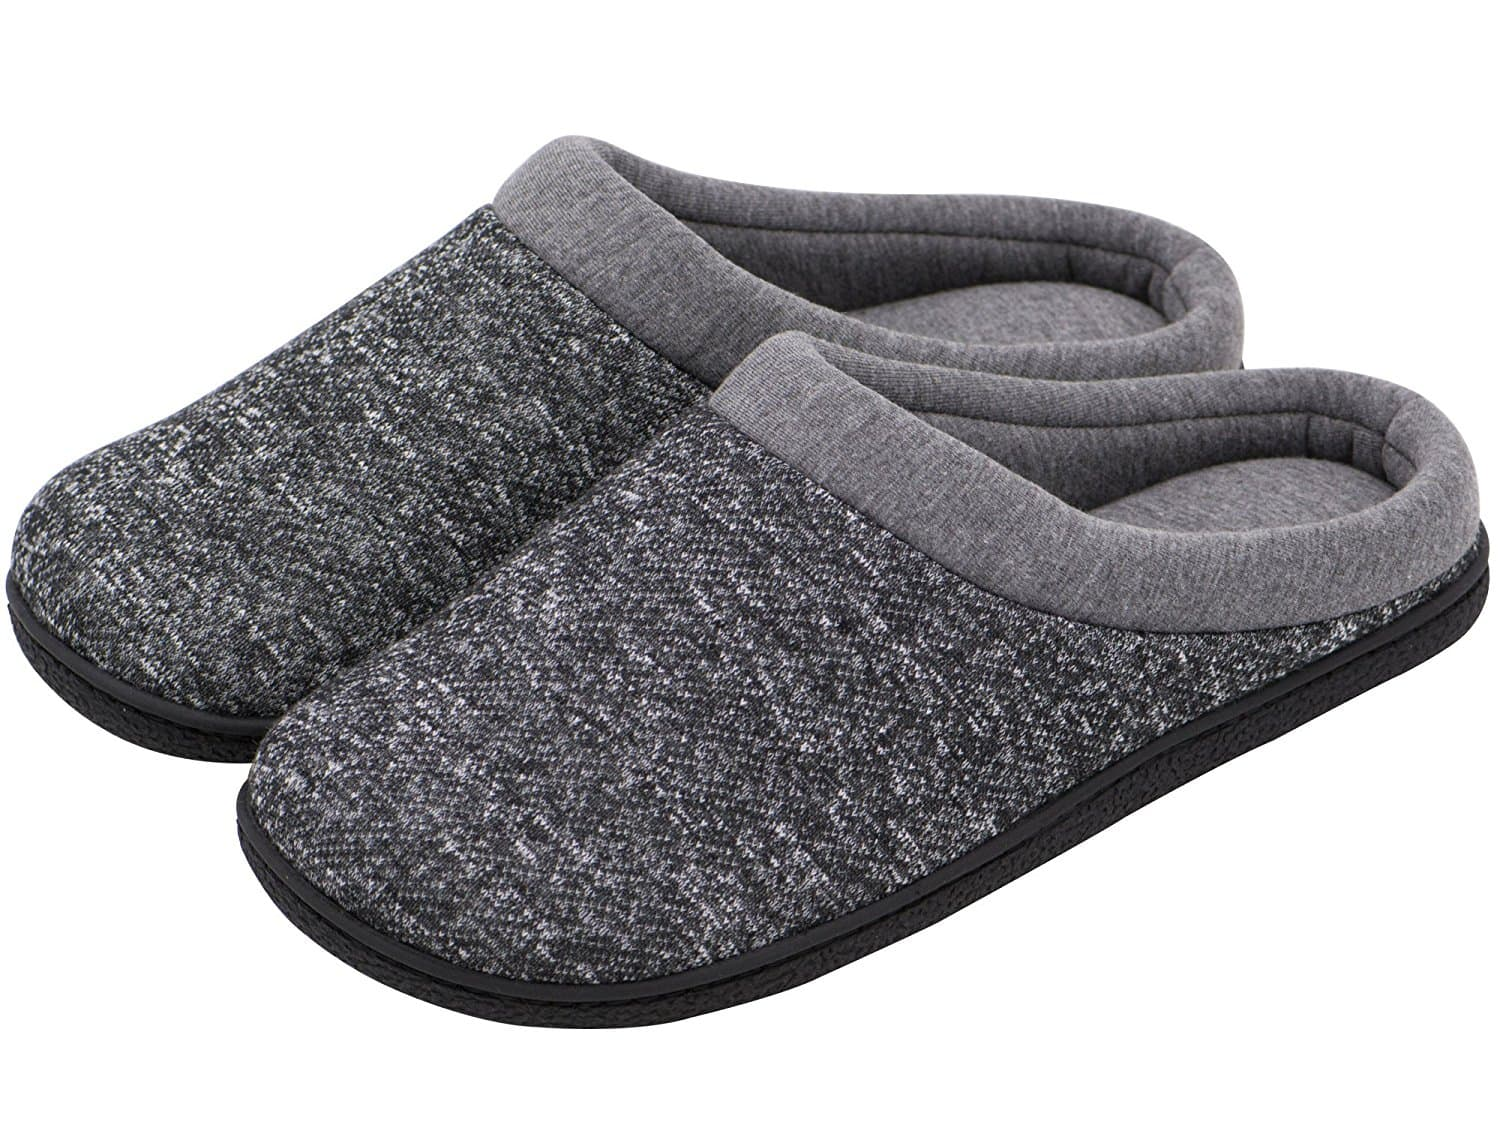 e4ca88ab0650f Men's Comfort Winter Warm Slip On Memory Foam House Slippers Shoes Indoor/ Outdoor 20% OFF@$14.39+FS @Amazon